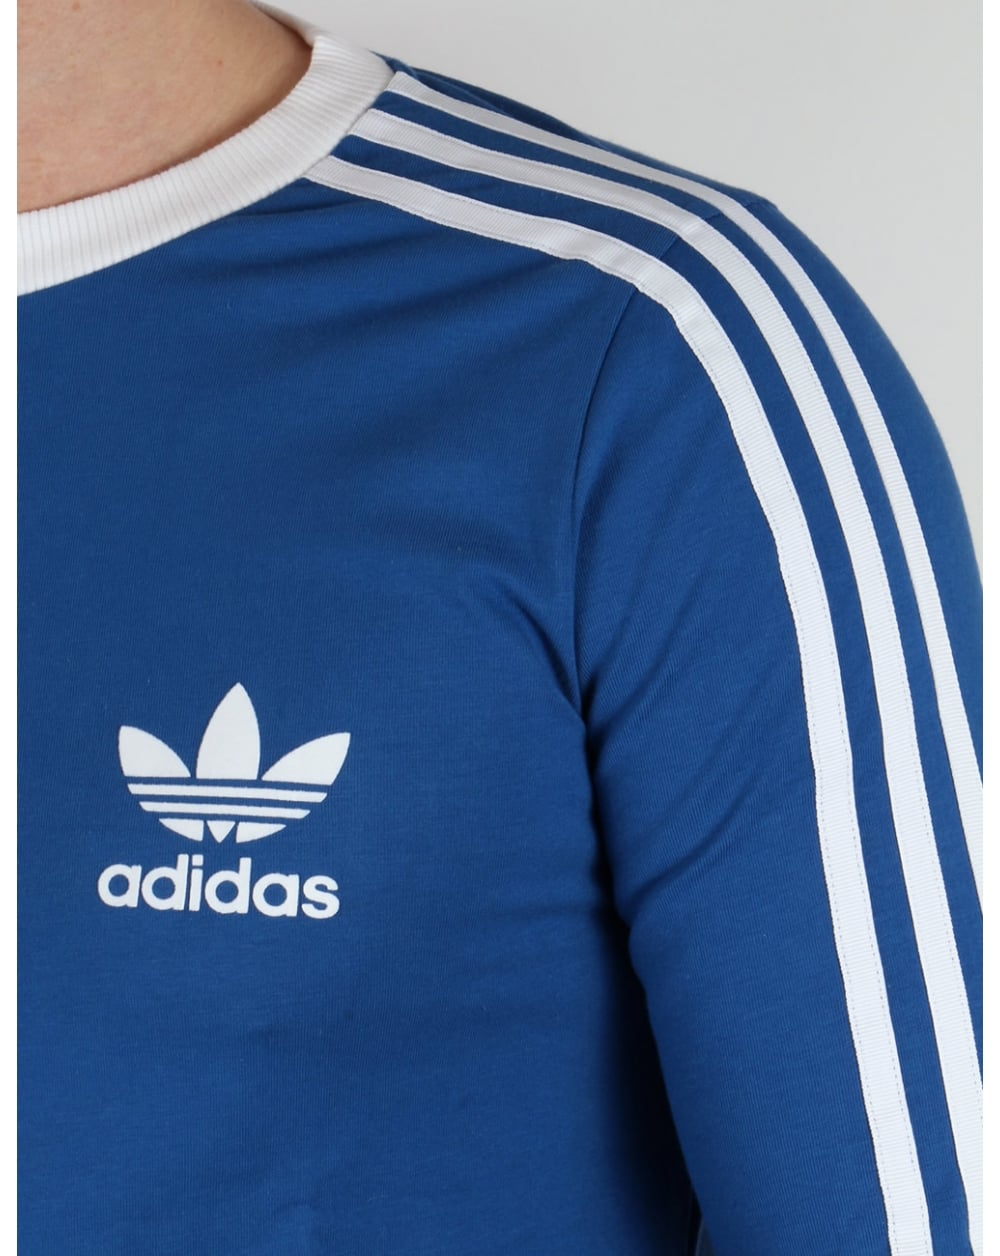 Adidas originals 3 stripes long sleeve t shirt eqt blue for Adidas lotus t shirt